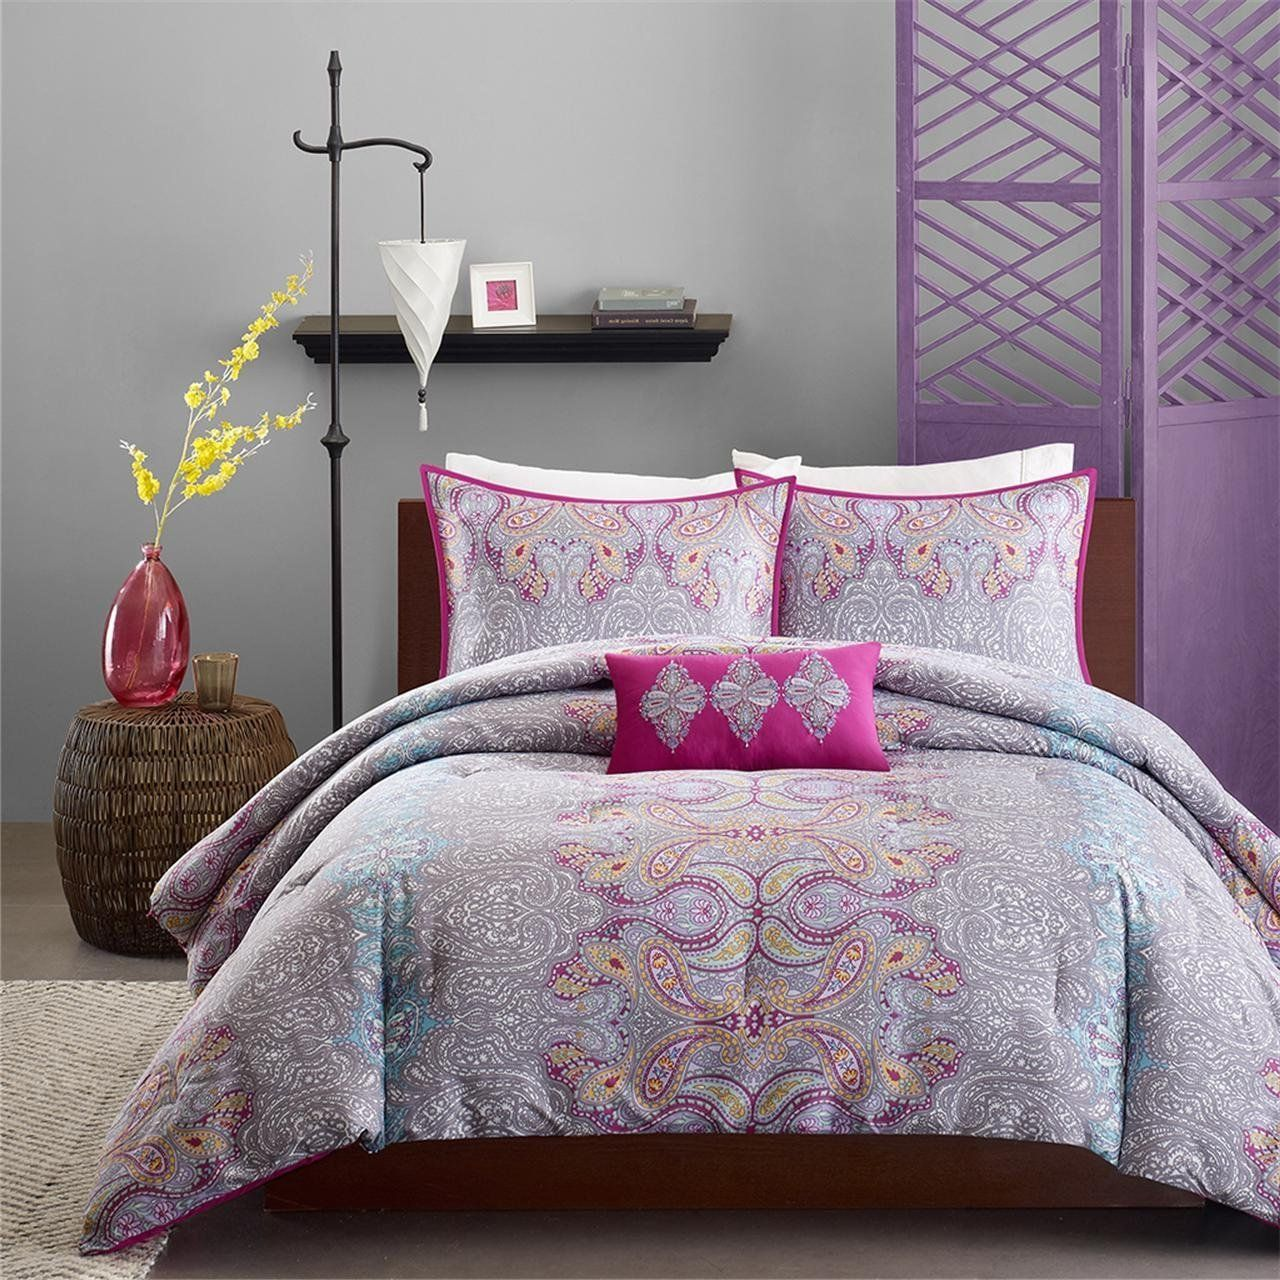 Teen Girl Bedding And Bedding Sets  Ease Bedding With Style -6398